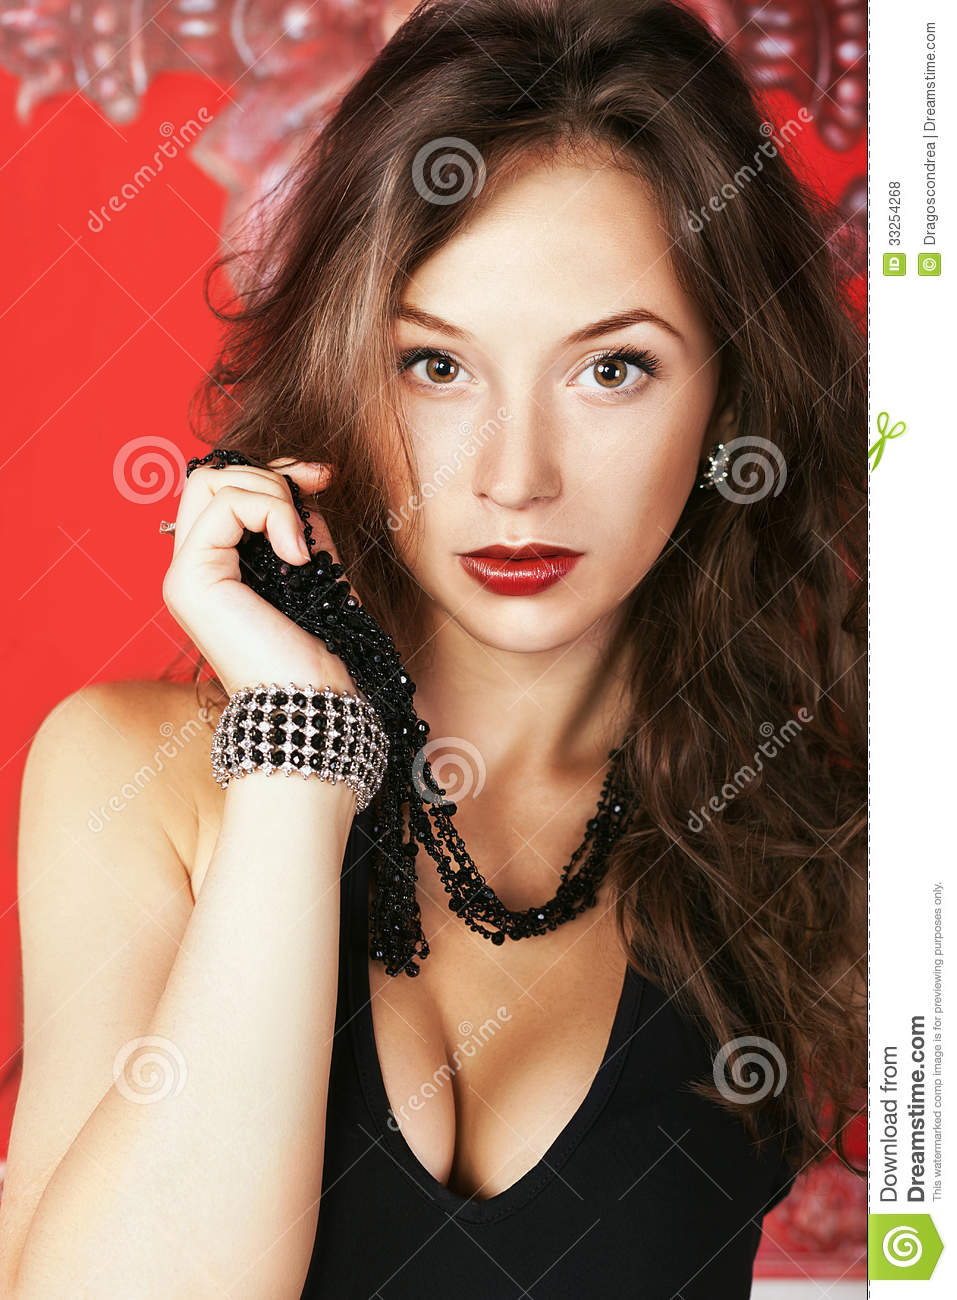 Fashion Glamour Girl With Jewellery On Red Vintage